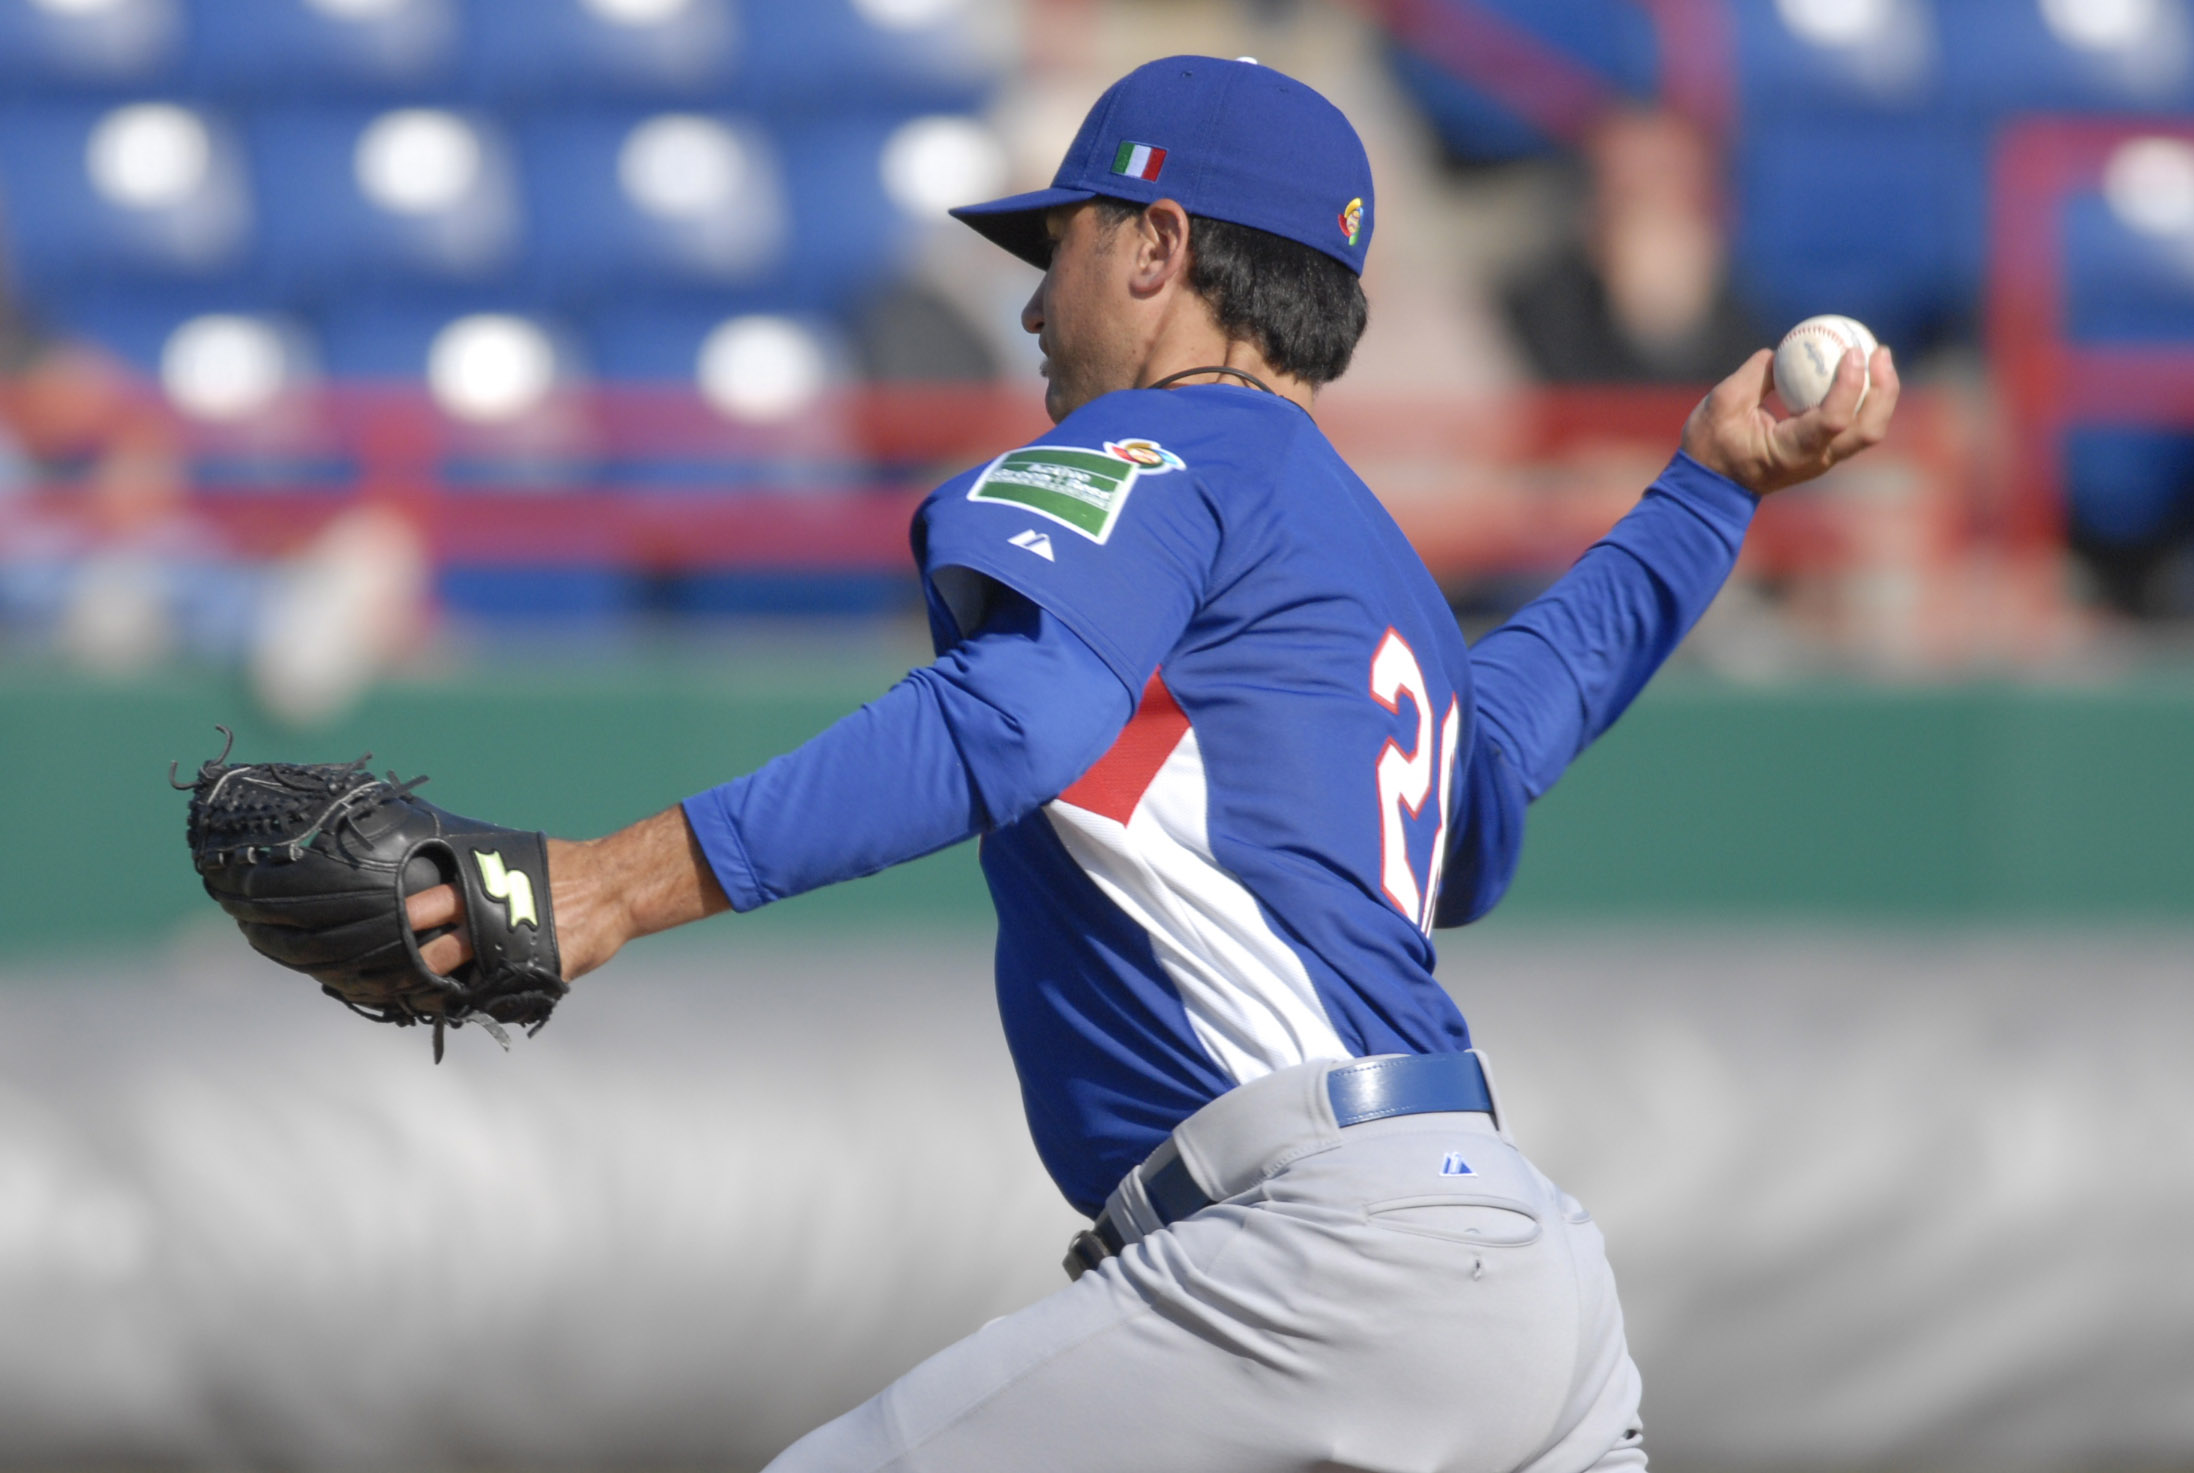 Cody Cillo pitching for Italy before WBC09